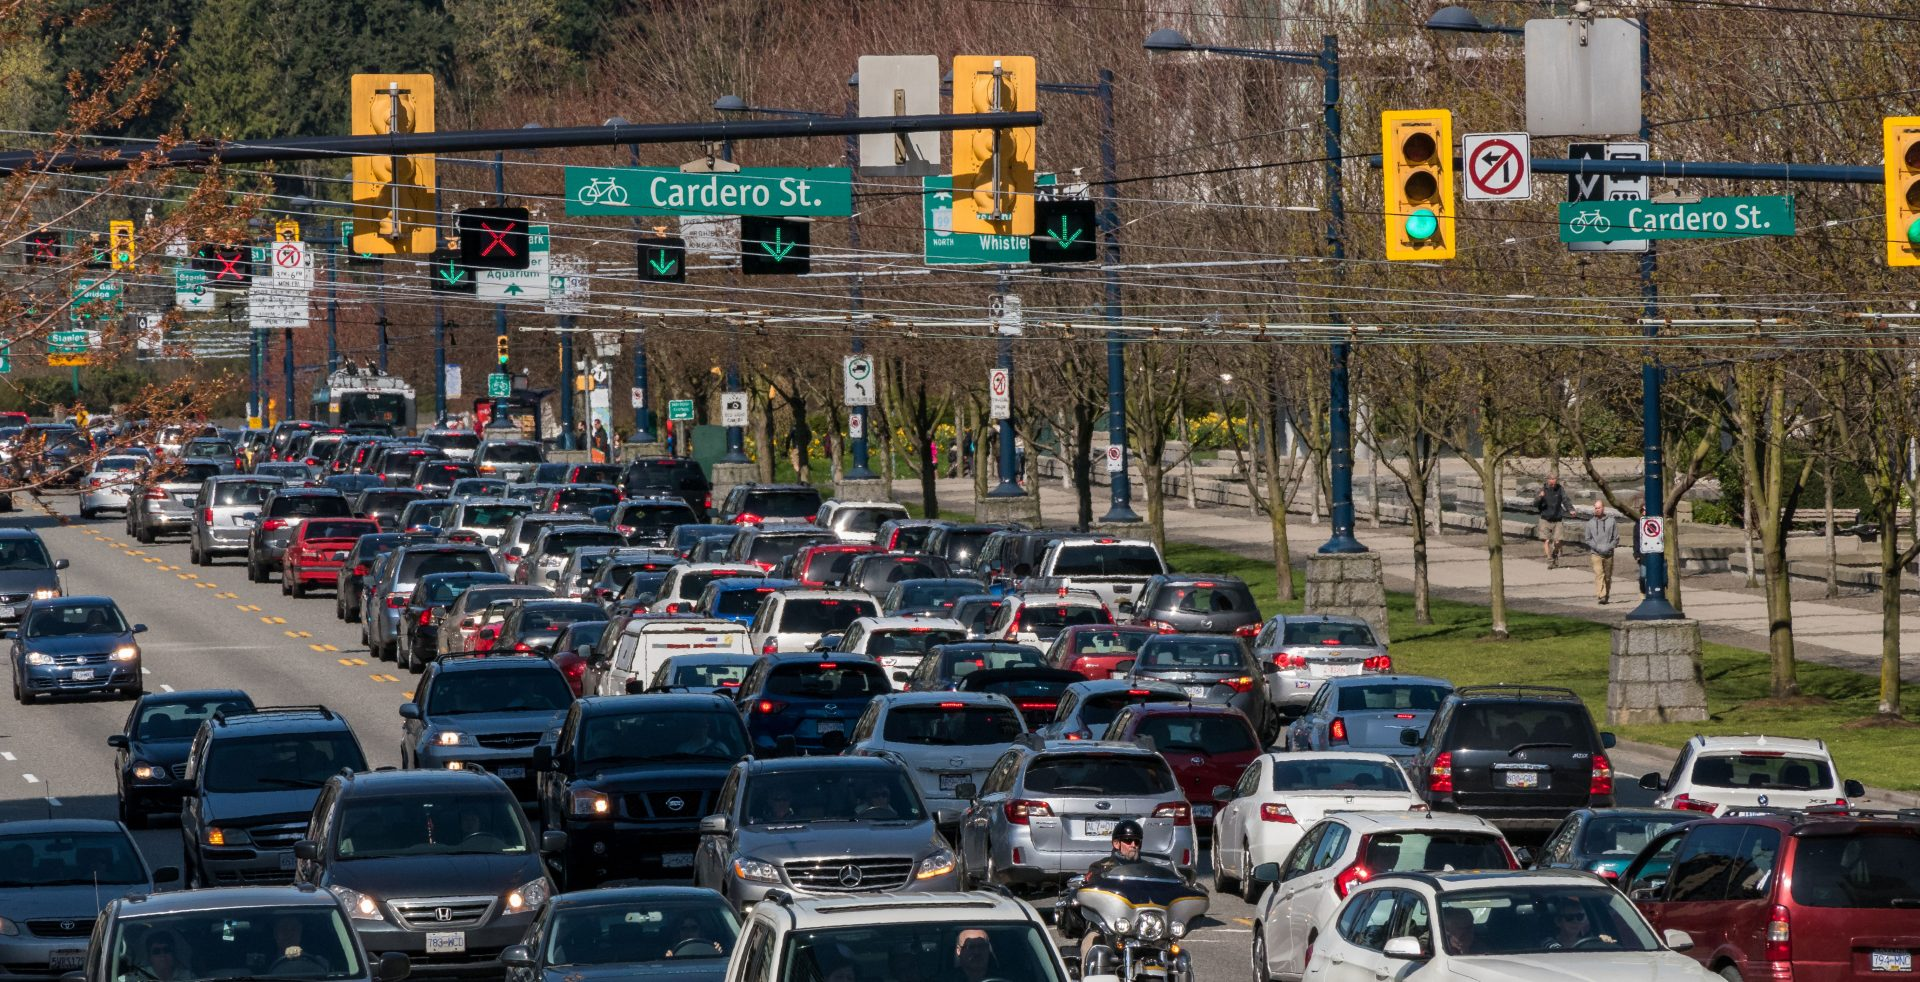 BC cherry-picks data to make speed, distracted driving seem more dangerous: group